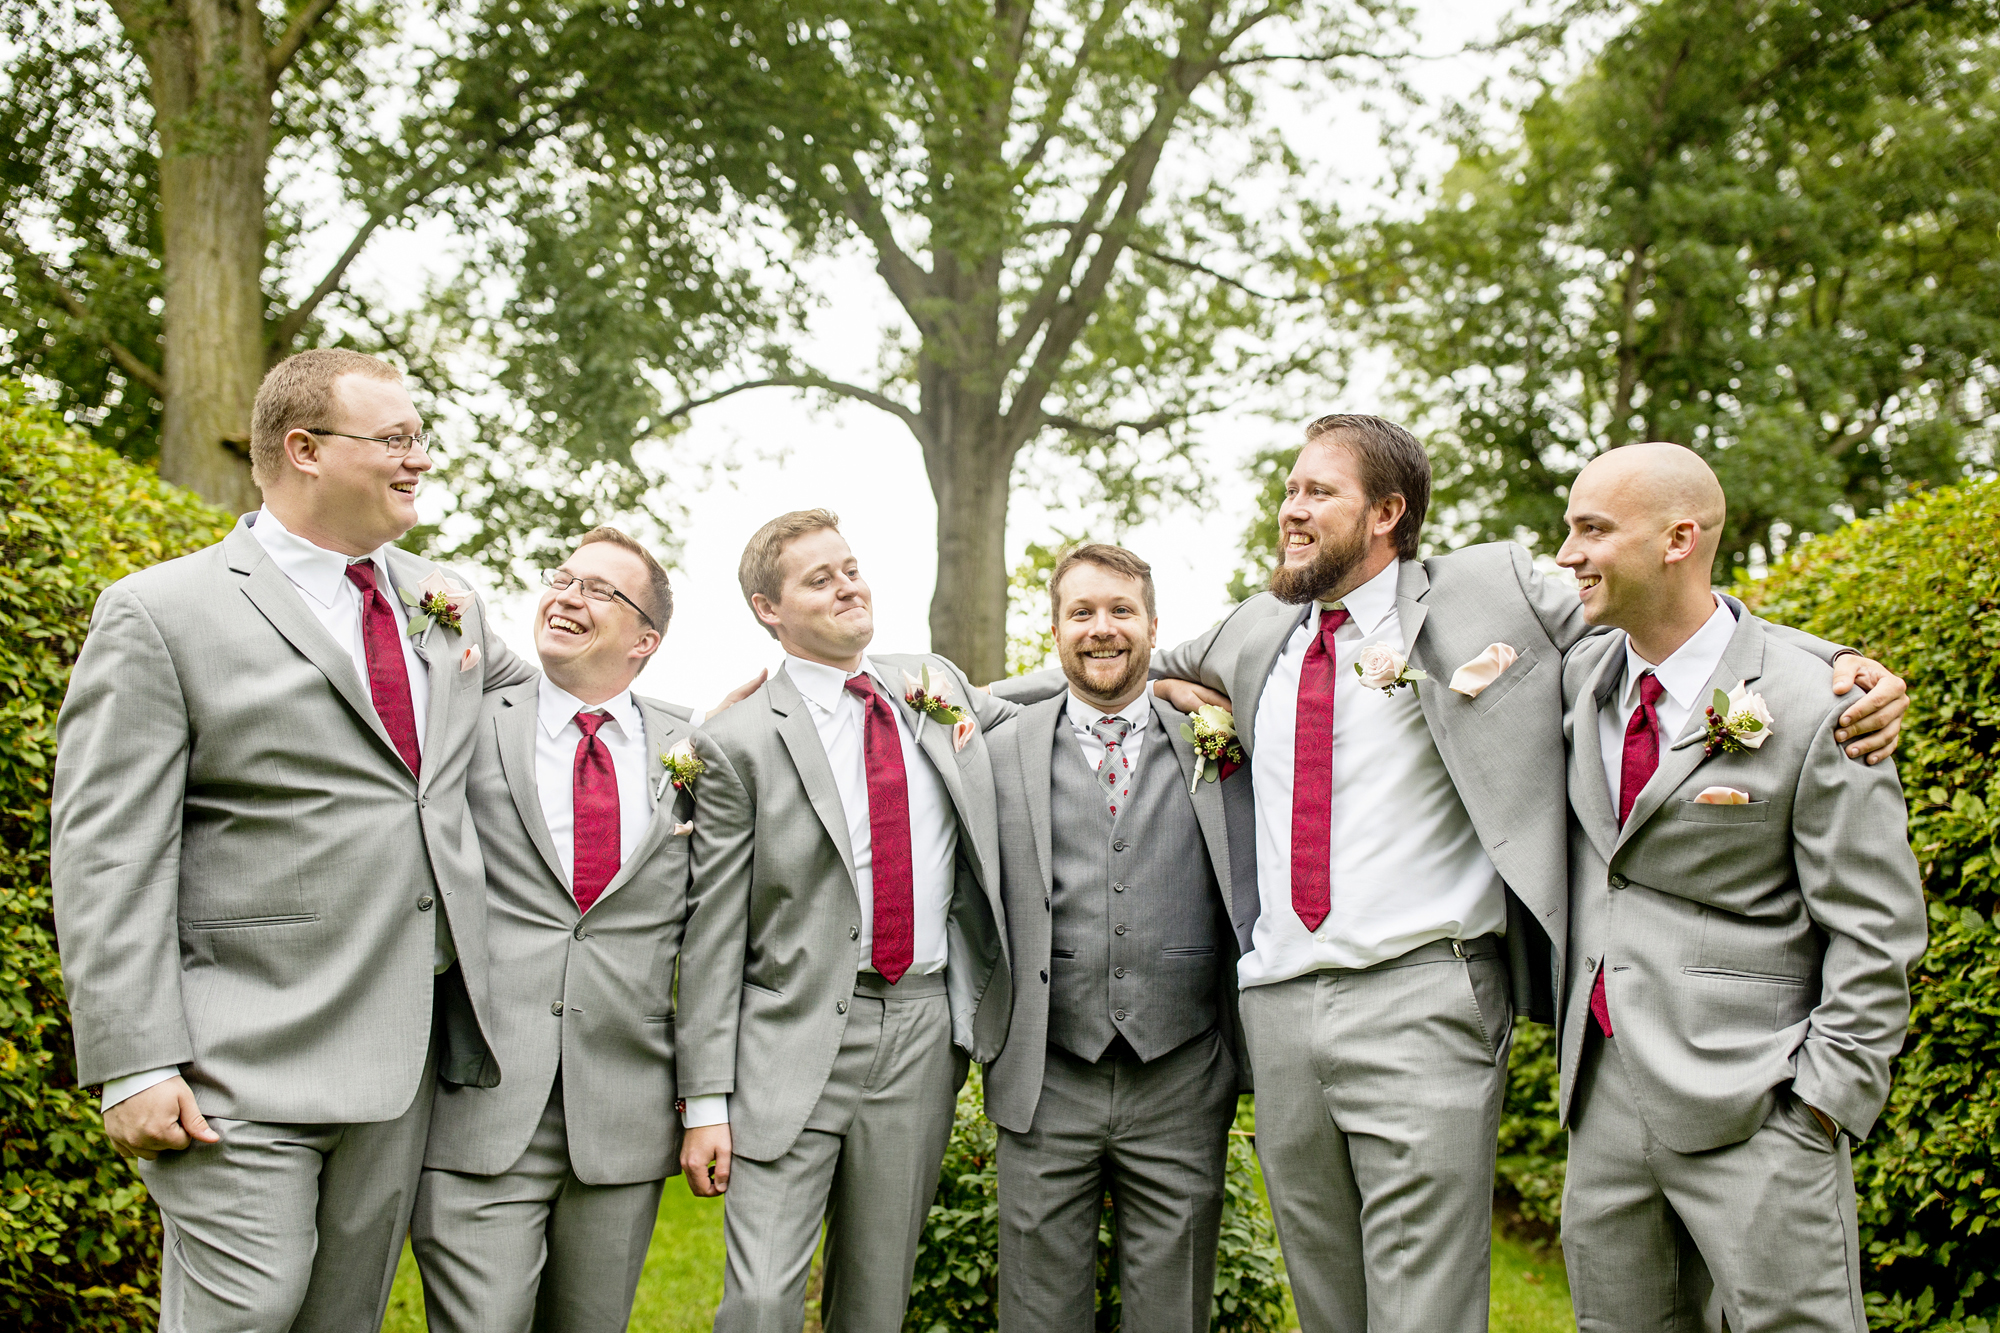 Seriously_Sabrina_Photography_Lisle_Illinois_Morton_Arboretum_Wedding_Day_Gowen50.jpg